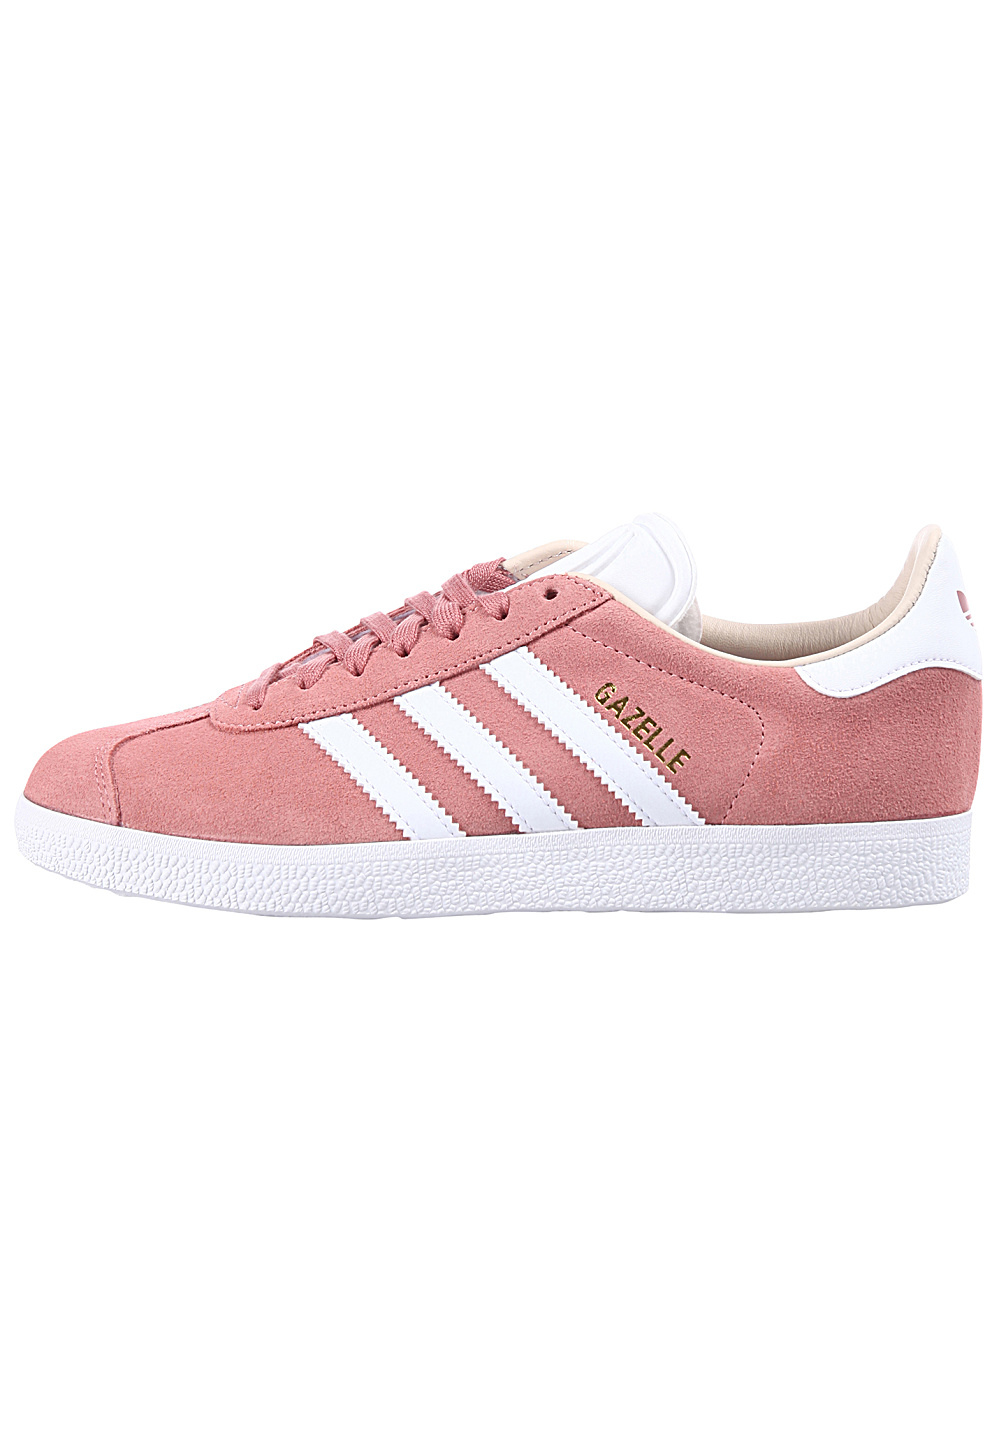 ADIDAS ORIGINALS Gazelle - Sneakers for Women - Pink